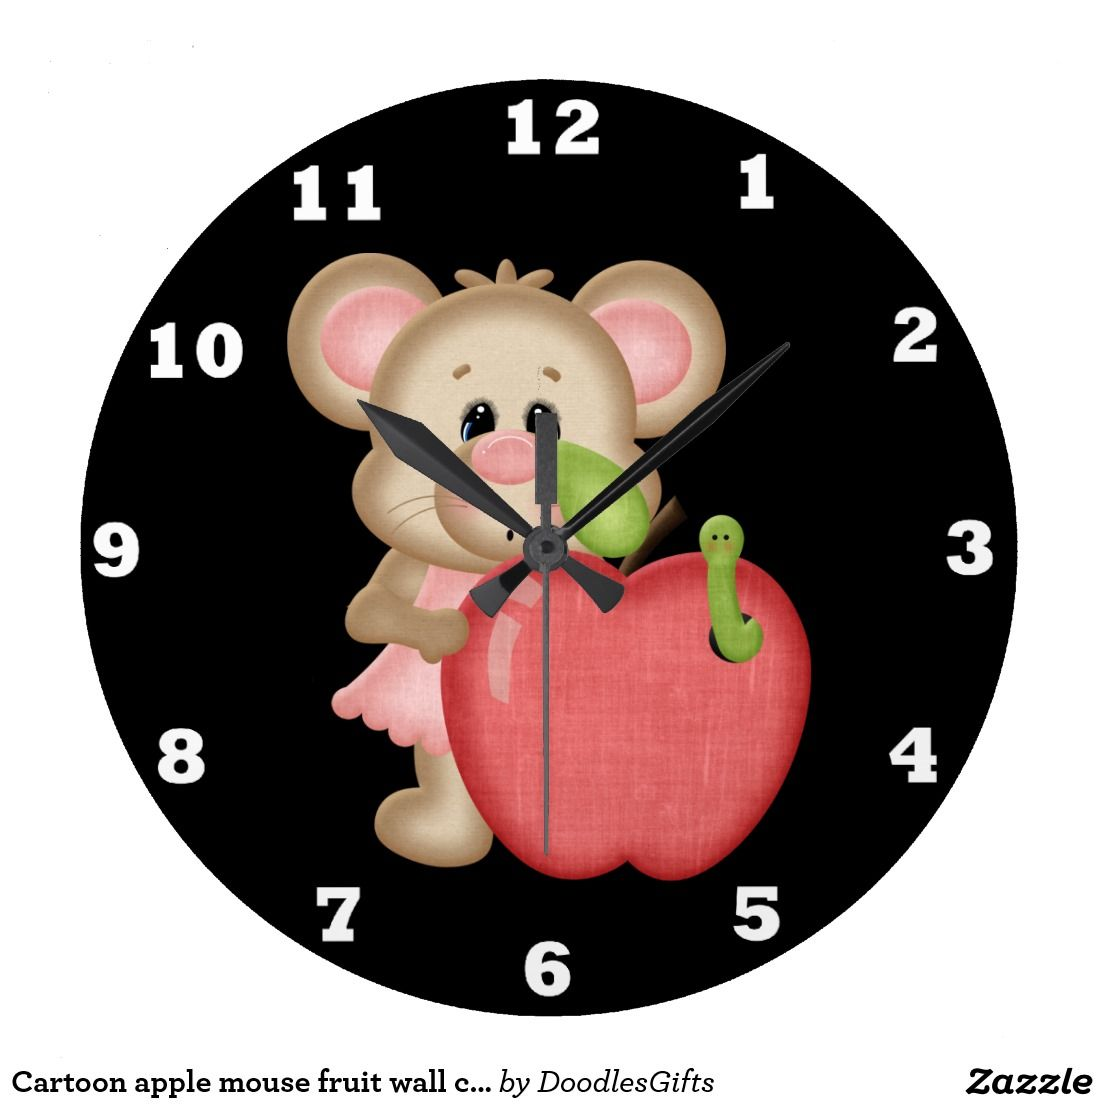 Cartoon apple mouse fruit wall clock